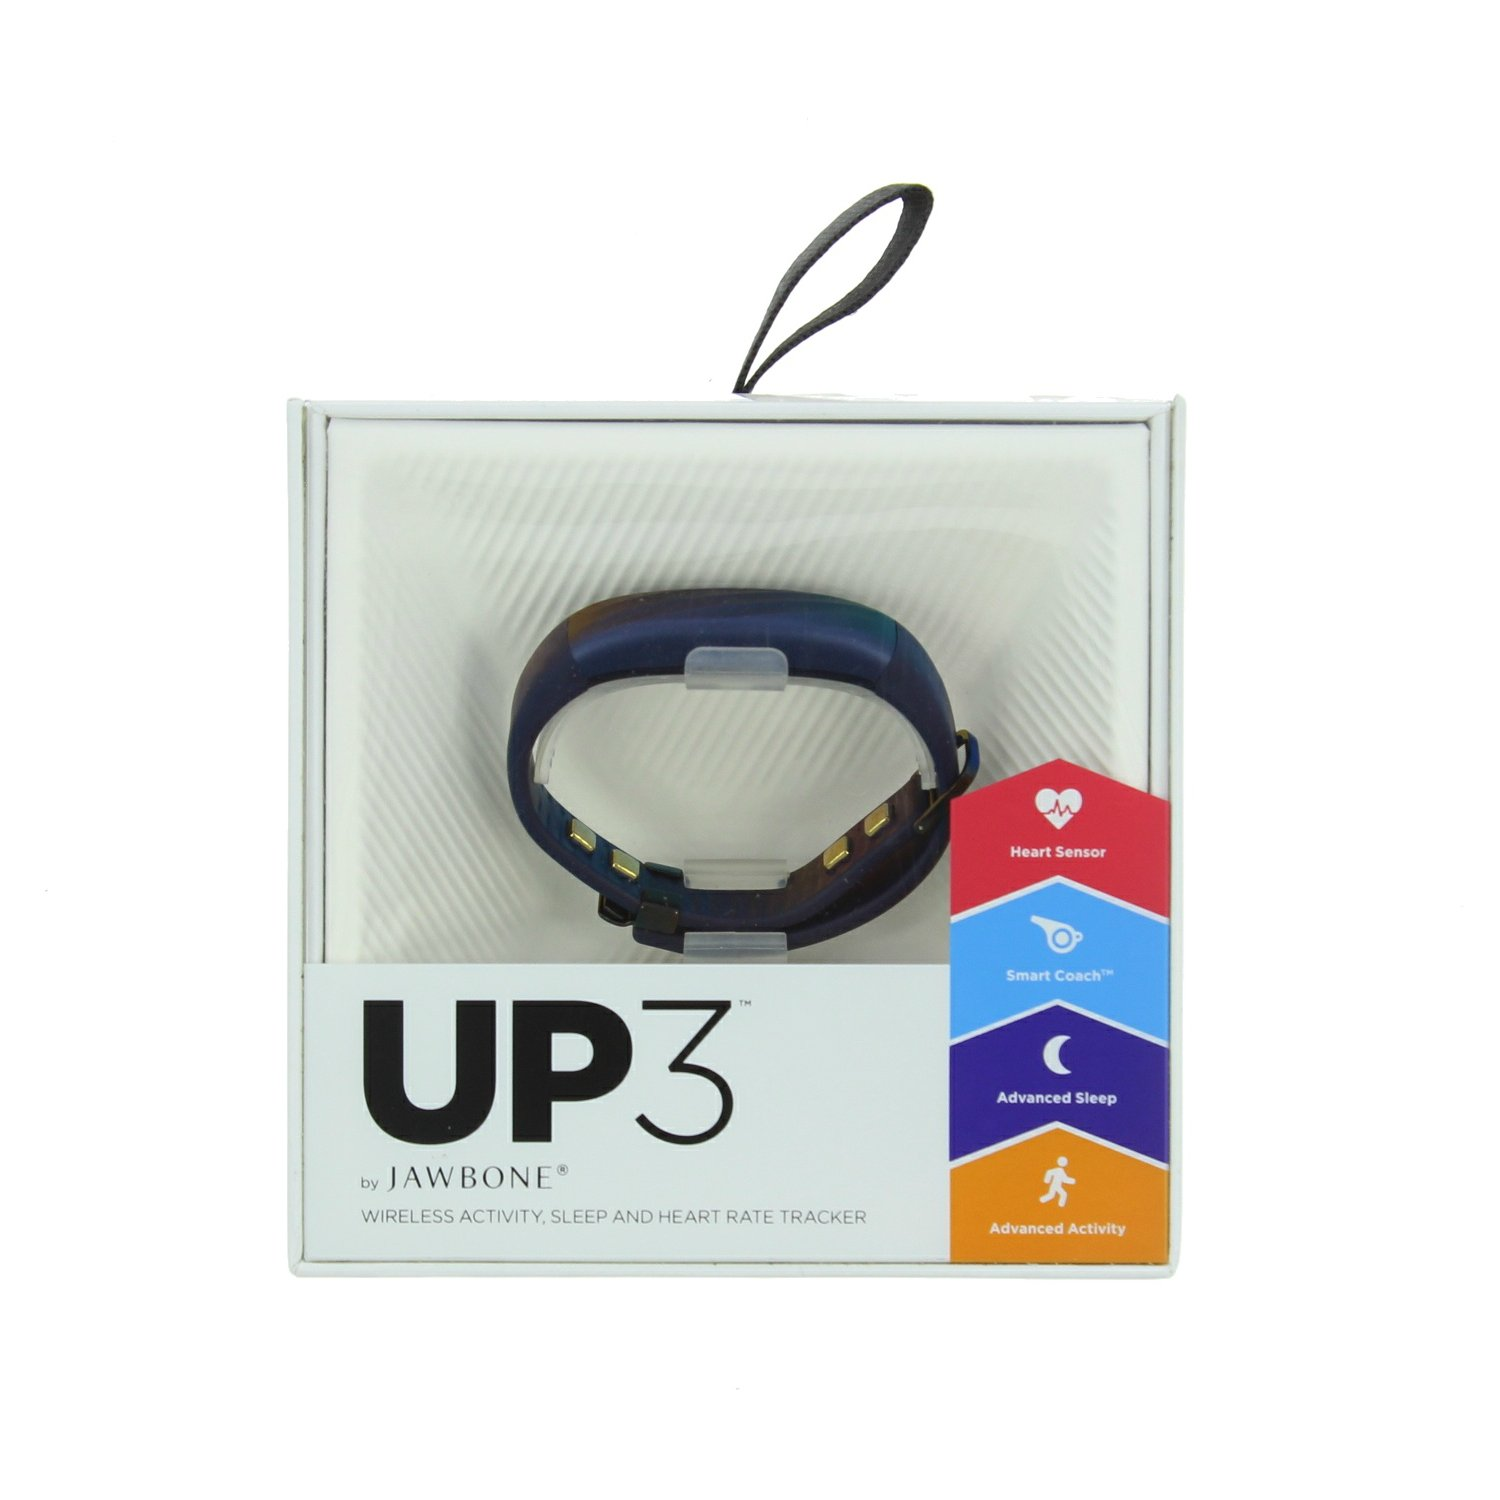 Jawbone UP3 JL04-6003ABD-US Activity Tracker Band with Heart Rate Monitoring, Sleep Tracking and Smart Coach System…